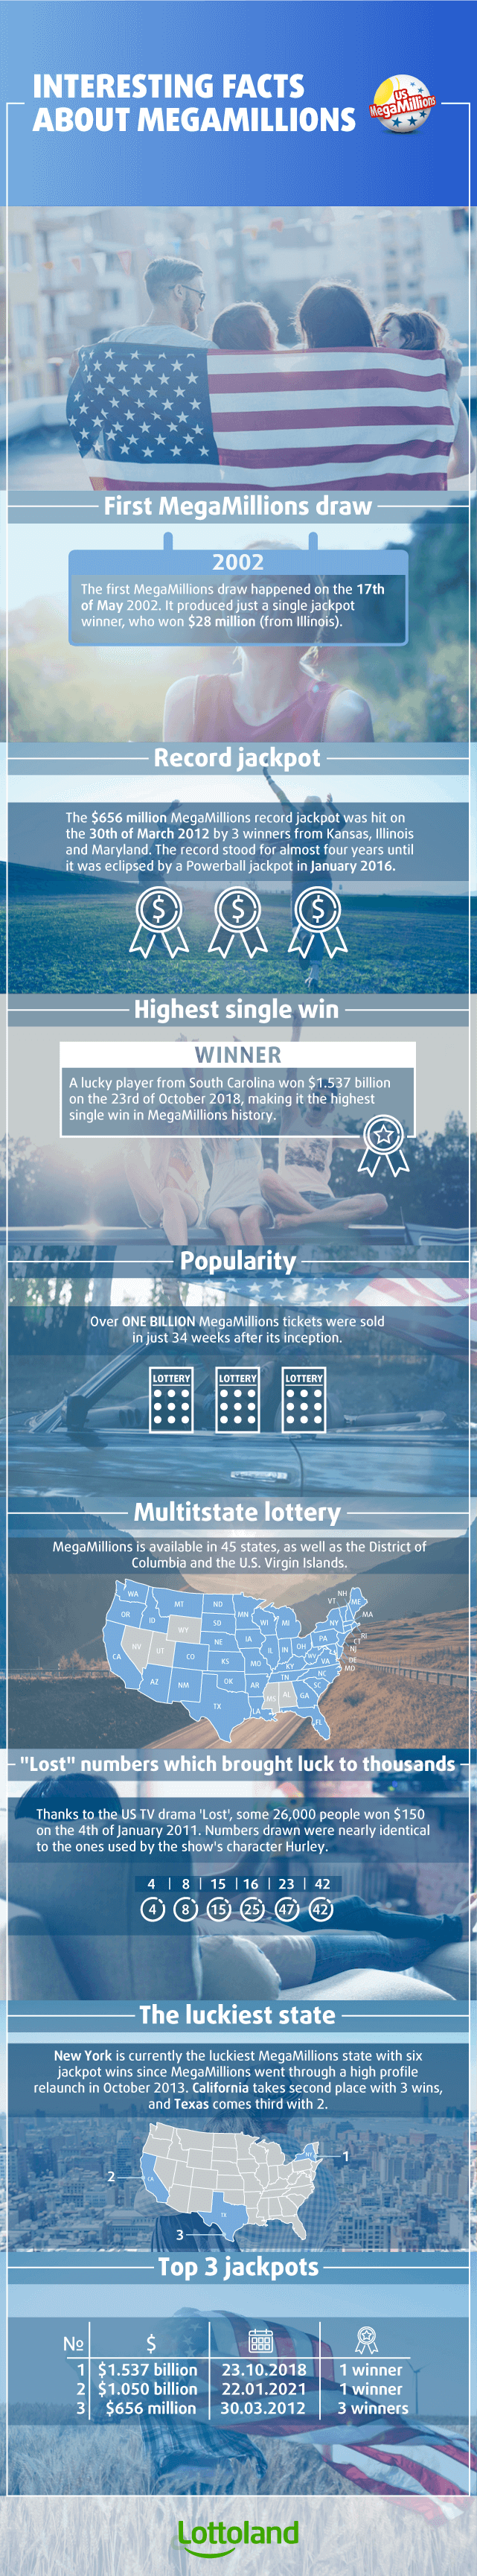 Infographic with interesting facts about MegaMillions